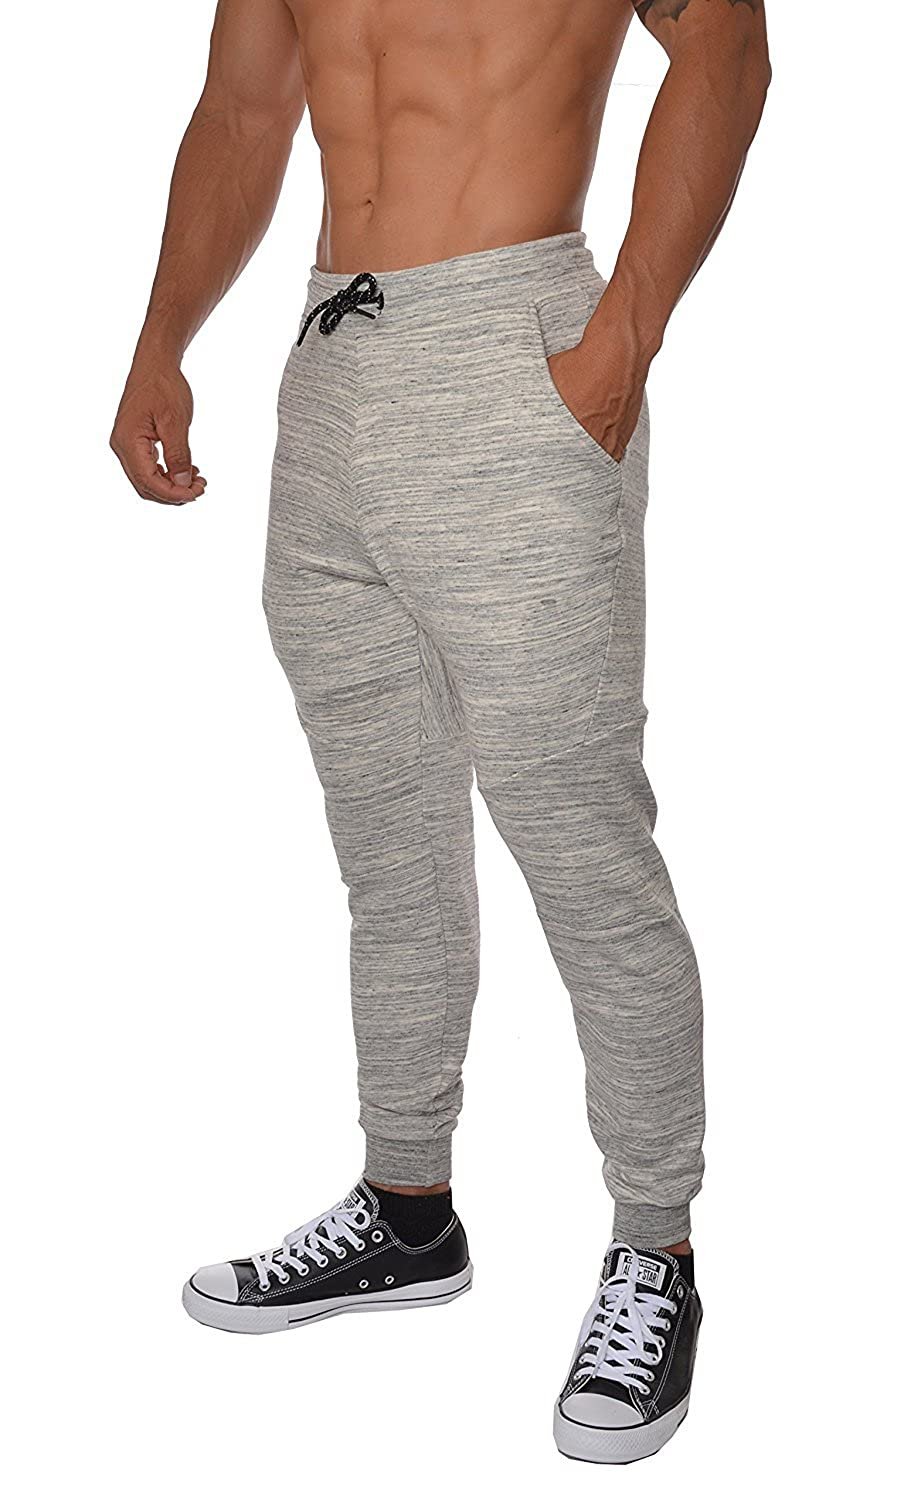 Taylor Heart Slim;Handsome French Terry Cotton Sweatpants Jogger Pants